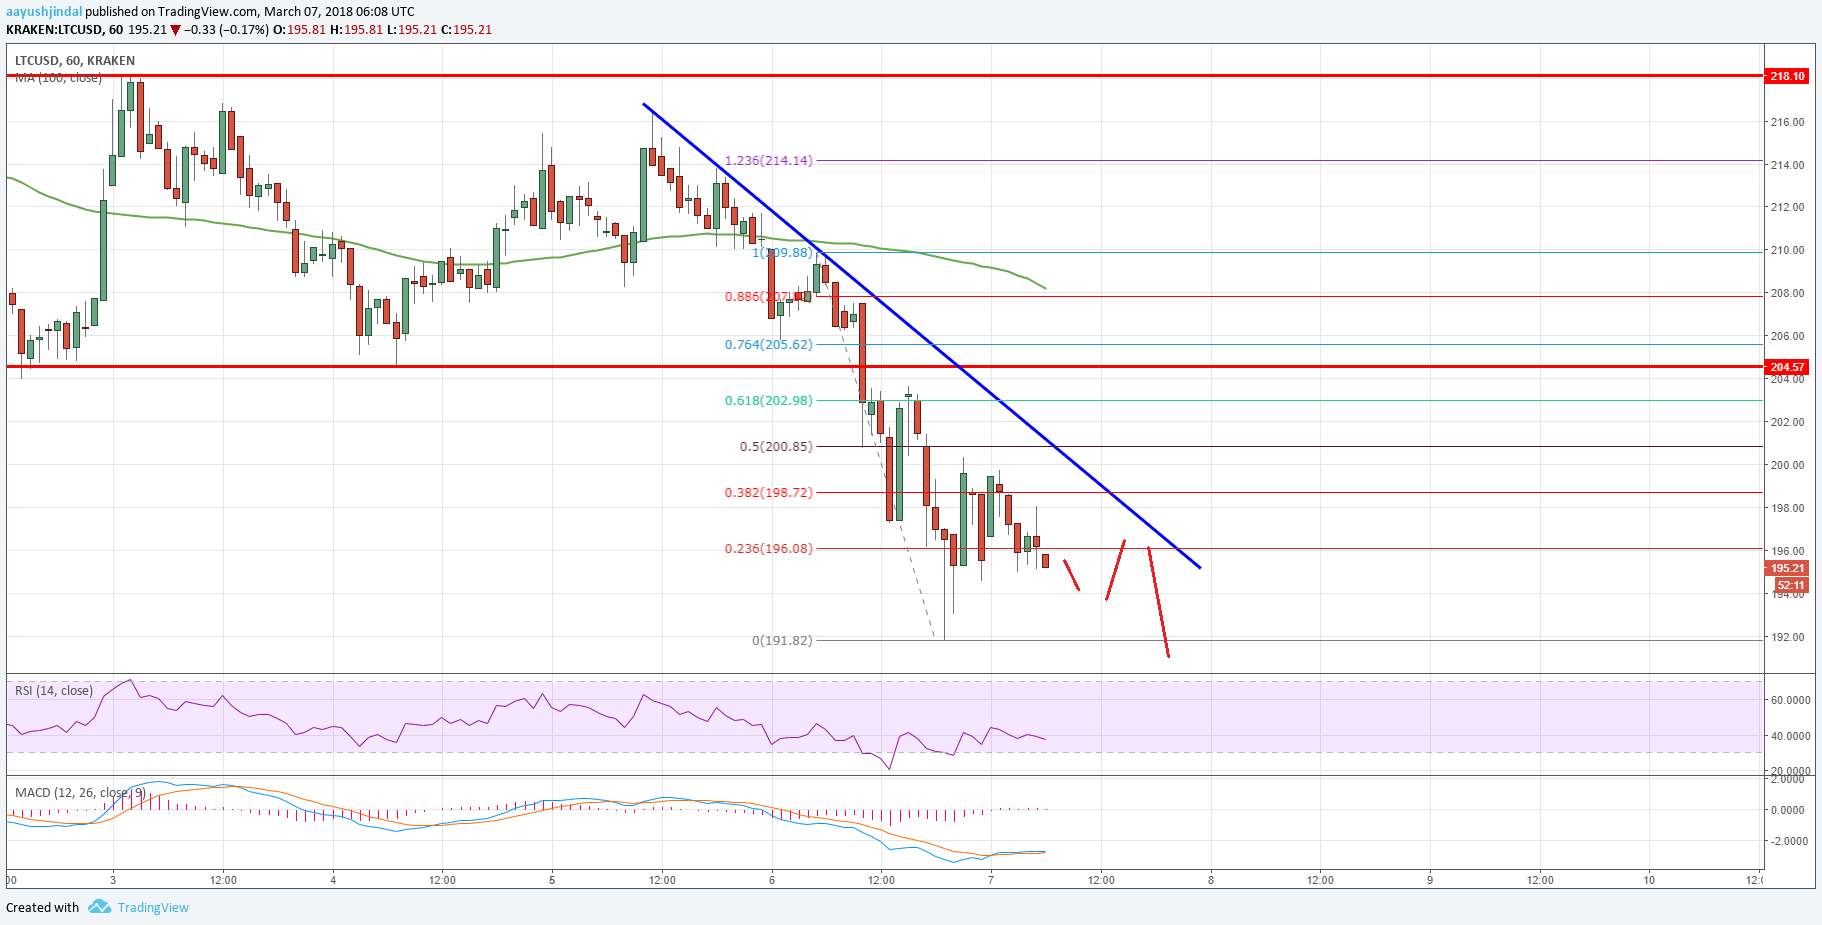 Litecoin Trend Chart >> Litecoin Price Analysis: LTC/USD Could Decline Further - Ethereum World News